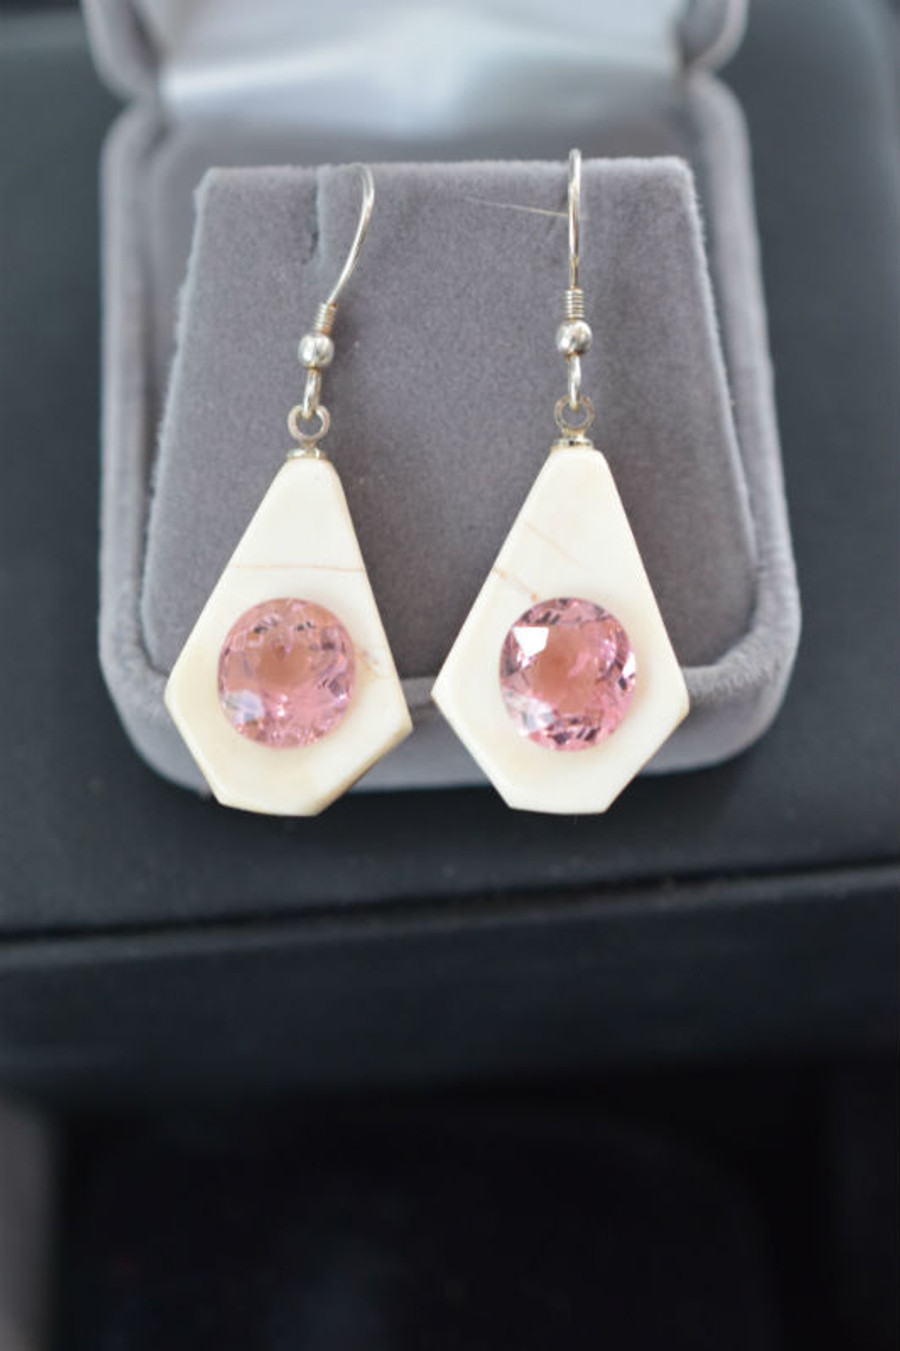 Alaskan Native crafted ivory with large oval natural tourmaline as the stunning center stones of earring set